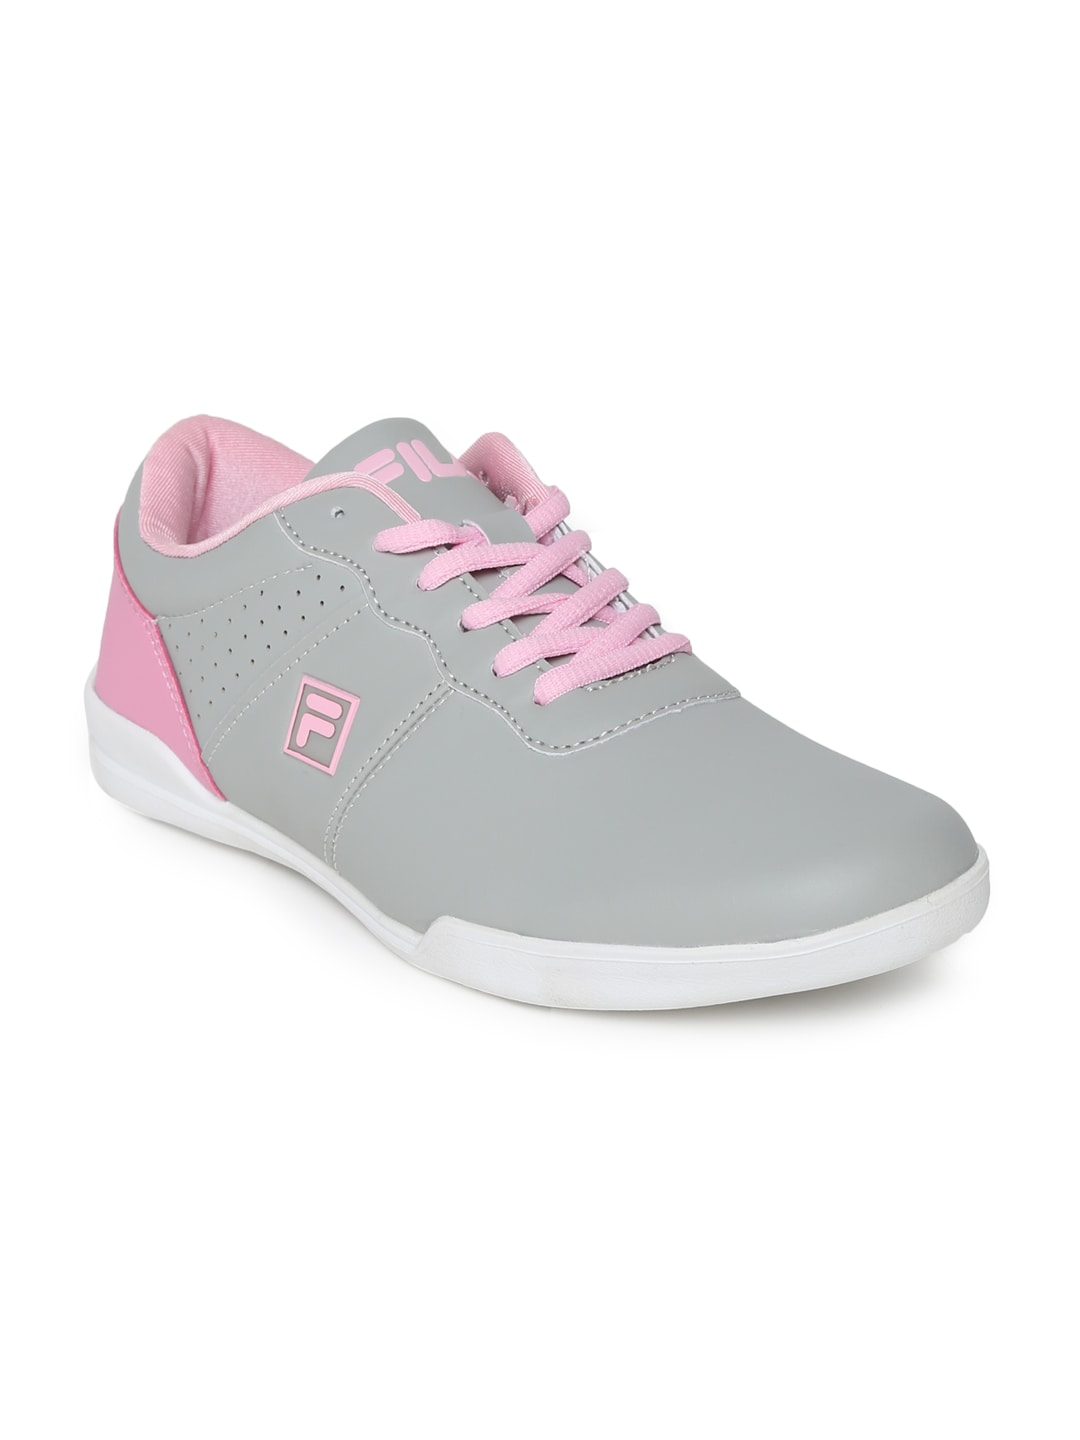 FILA Women Grey KAOMI Sneakers image